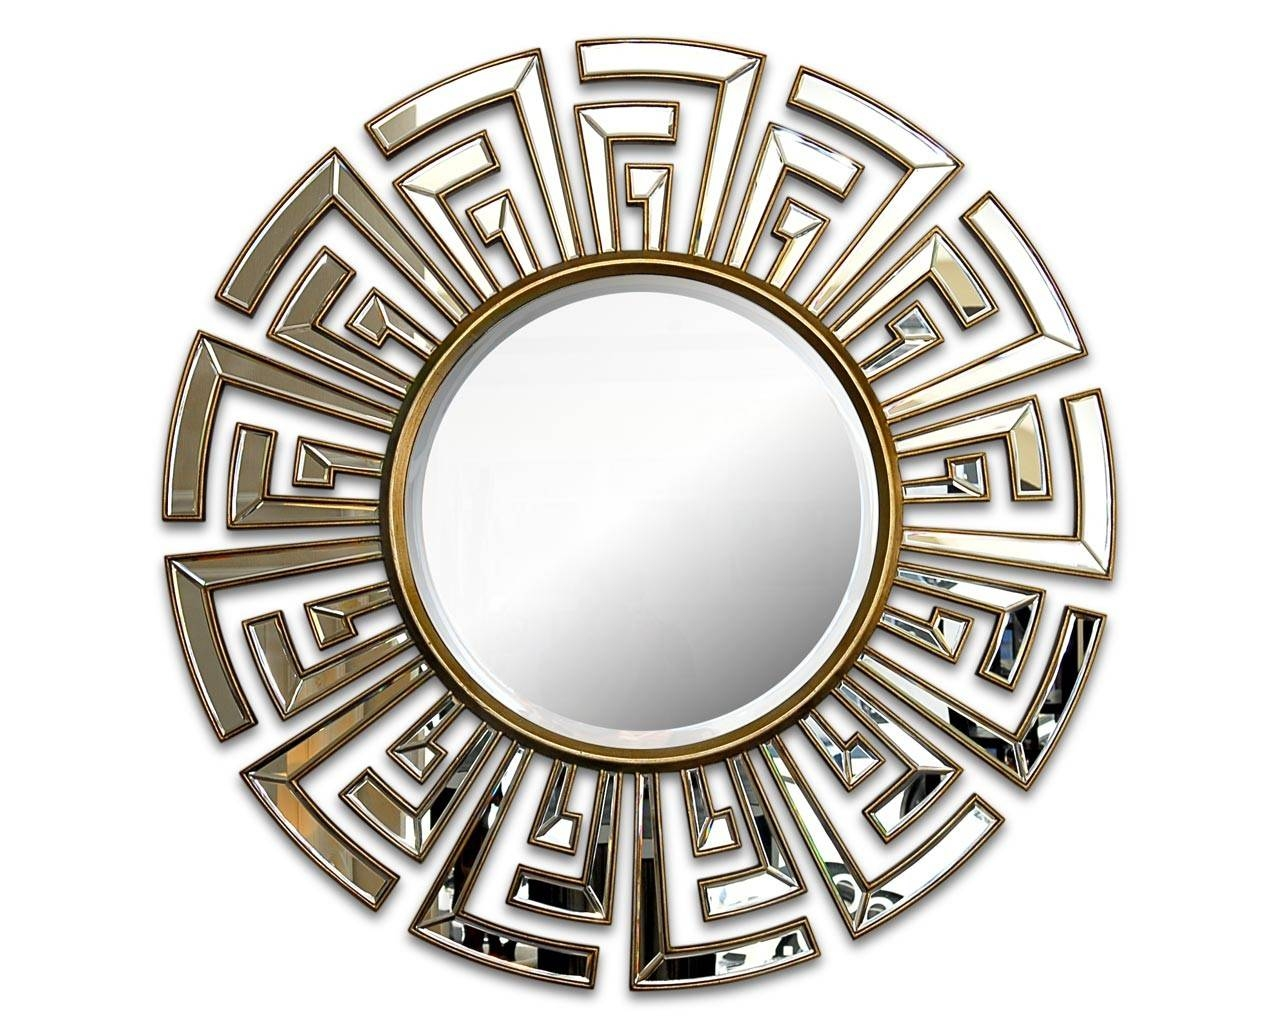 Contemporary Art Deco Round Mirror | Statement Circular Mirrors in Contemporary Round Mirrors (Image 8 of 25)